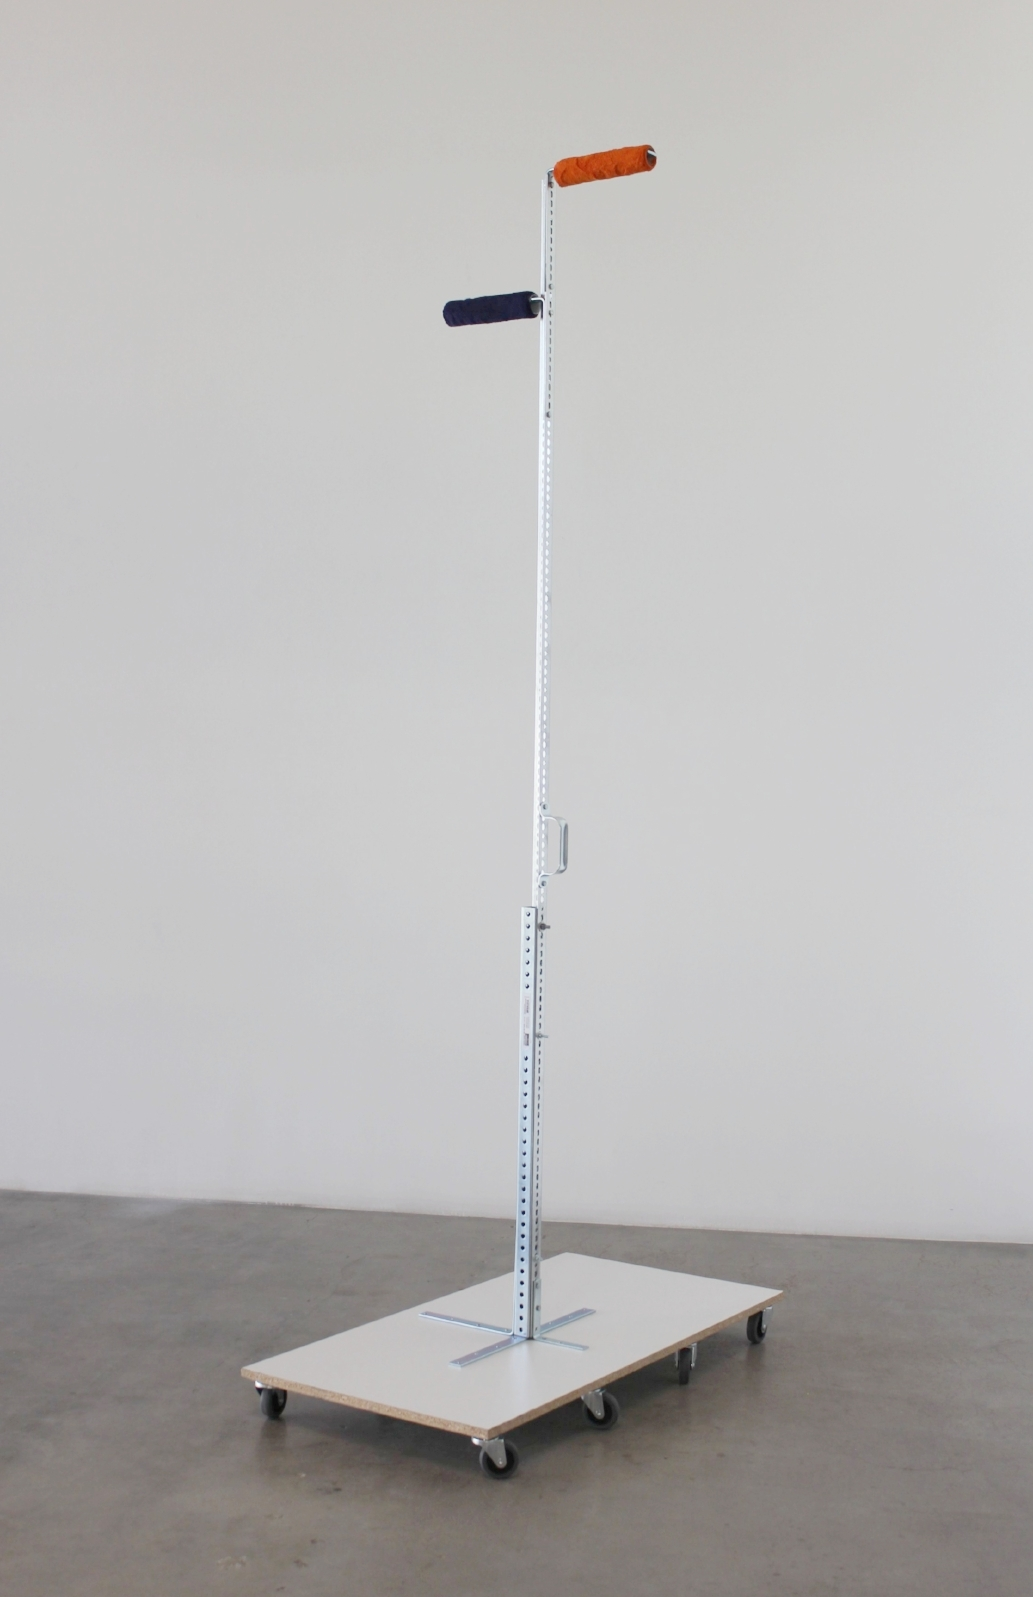 Utile #19 2018 102.125 x 48 x 24 inches